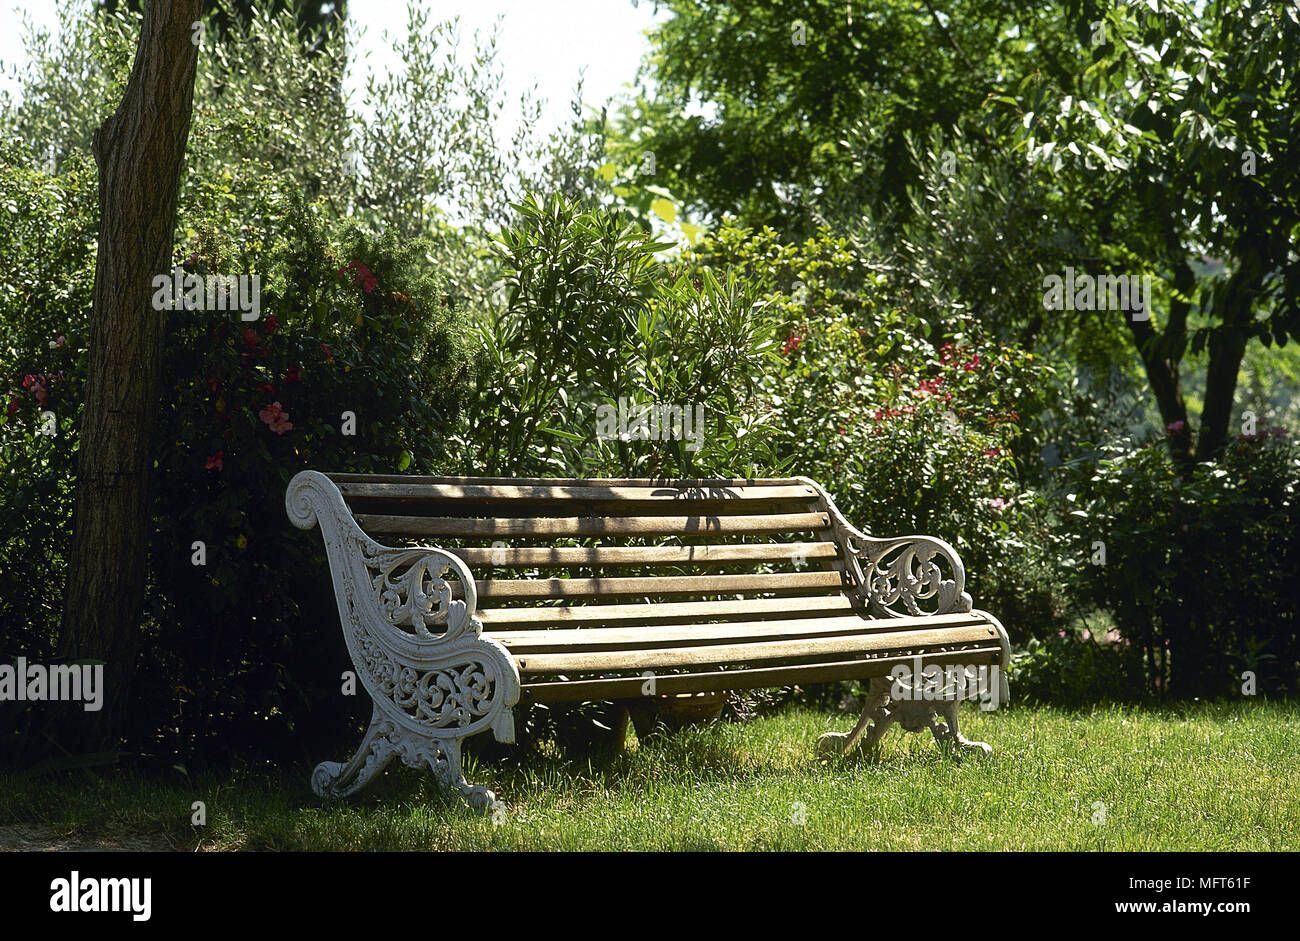 Picture of: Cast Iron Wooden Slatted Bench Seat In Garden Set Under Tree Stock Photo Alamy